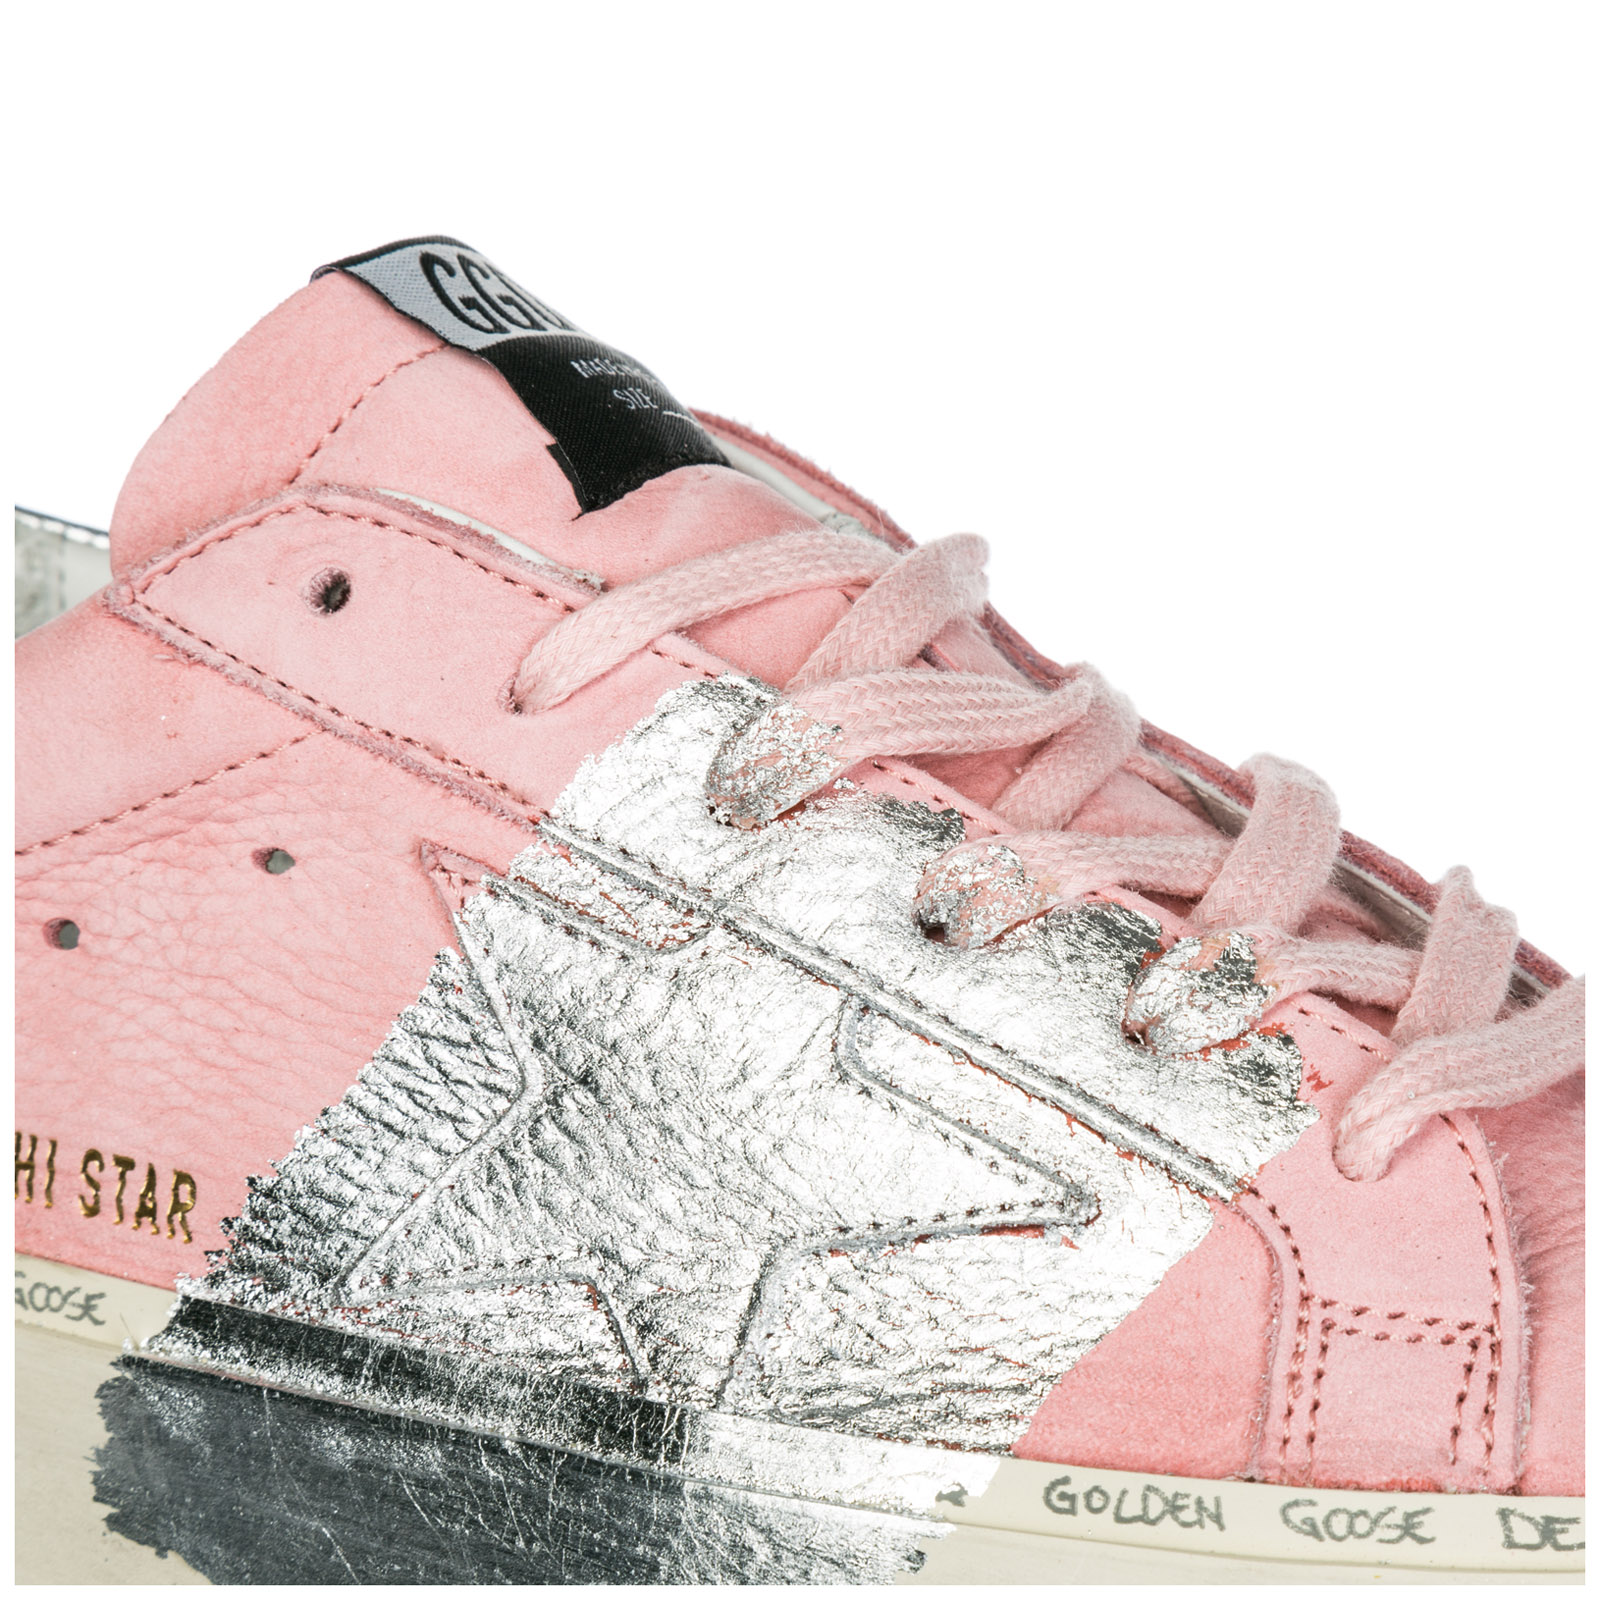 Women's shoes leather trainers sneakers hi star